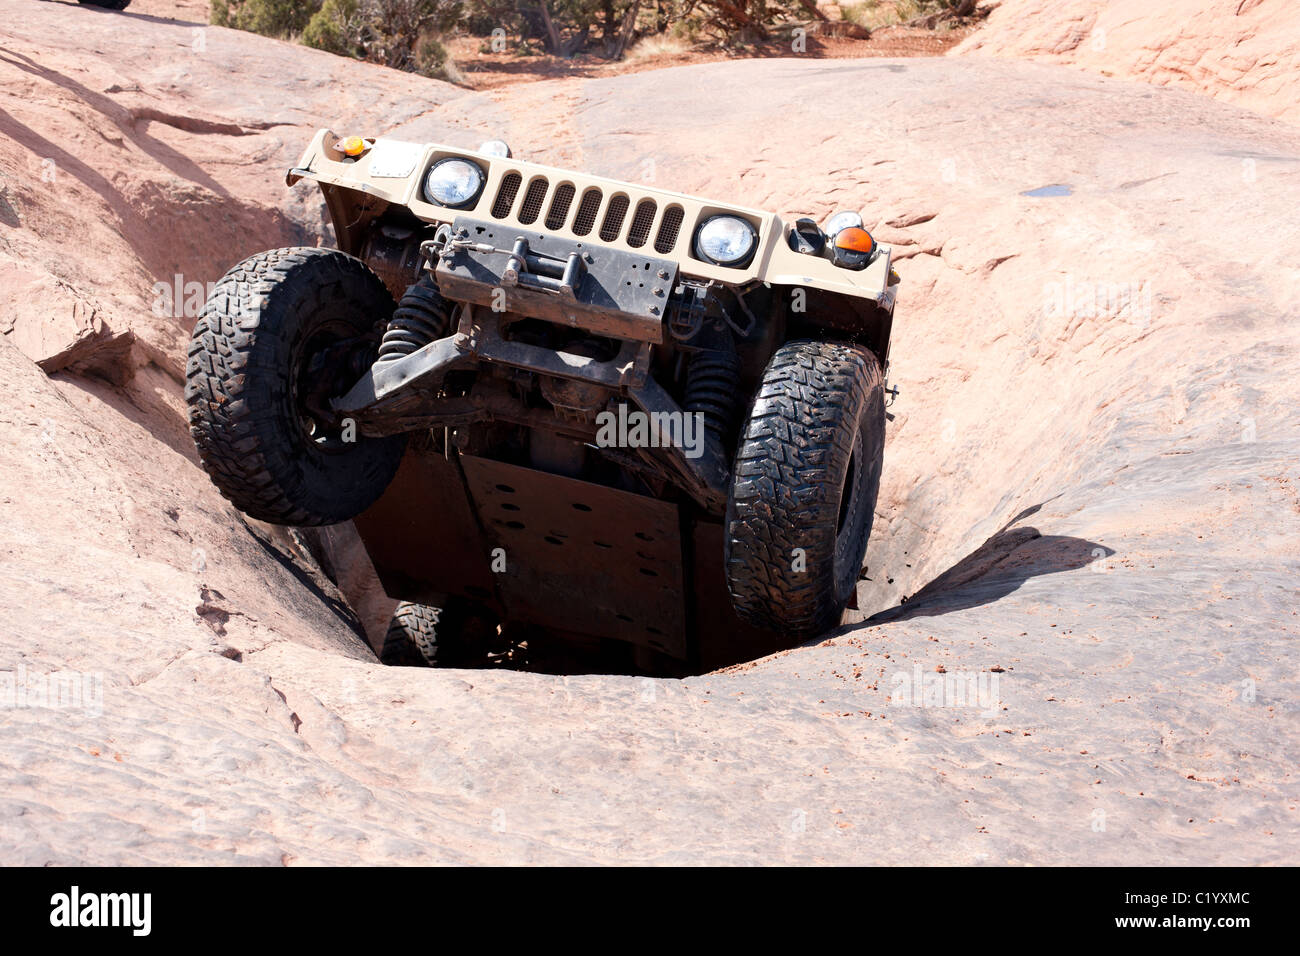 HUMMER using its full potential on the famed sandstone slick rock of Moab, Grand County, Utah, USA. - Stock Image